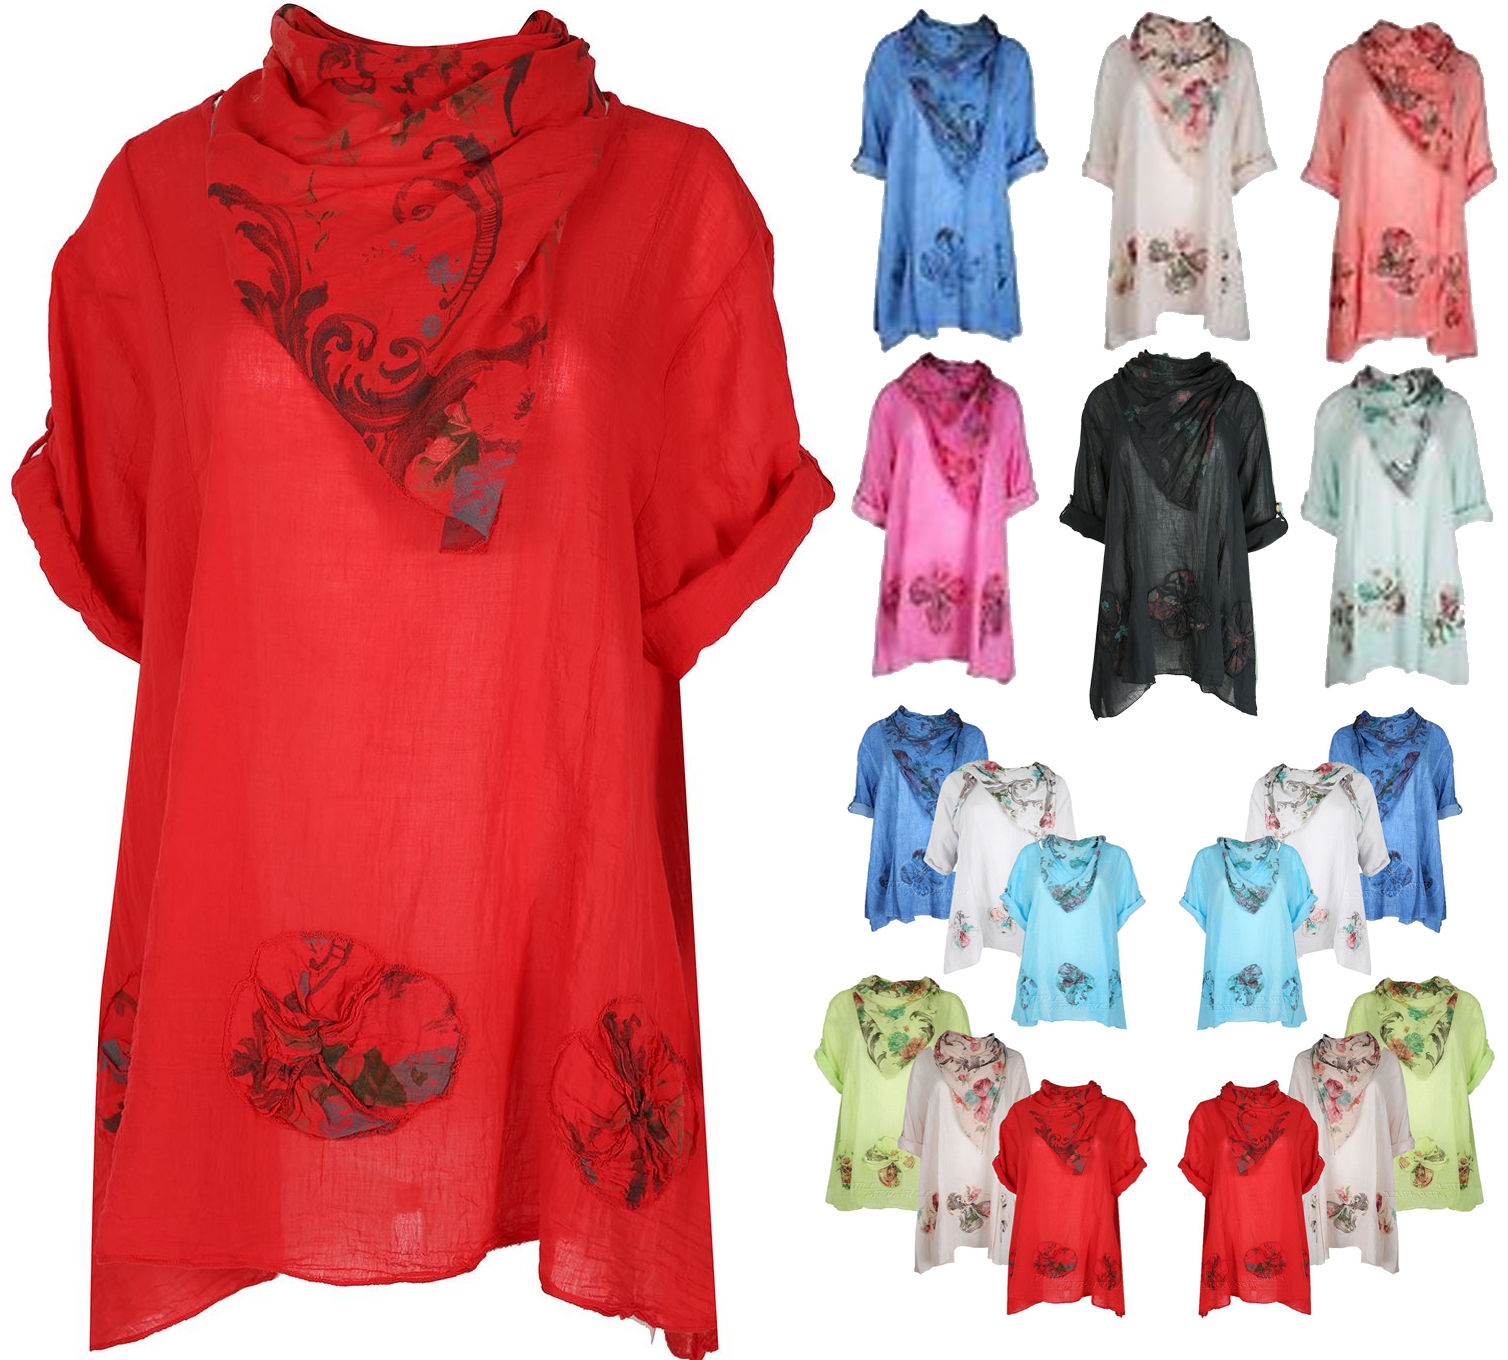 476ce74d5a57 Ladies Leganlook Cotton FLORAL ITALIAN WOMAN TOP Tunic with scarf UK 16-24